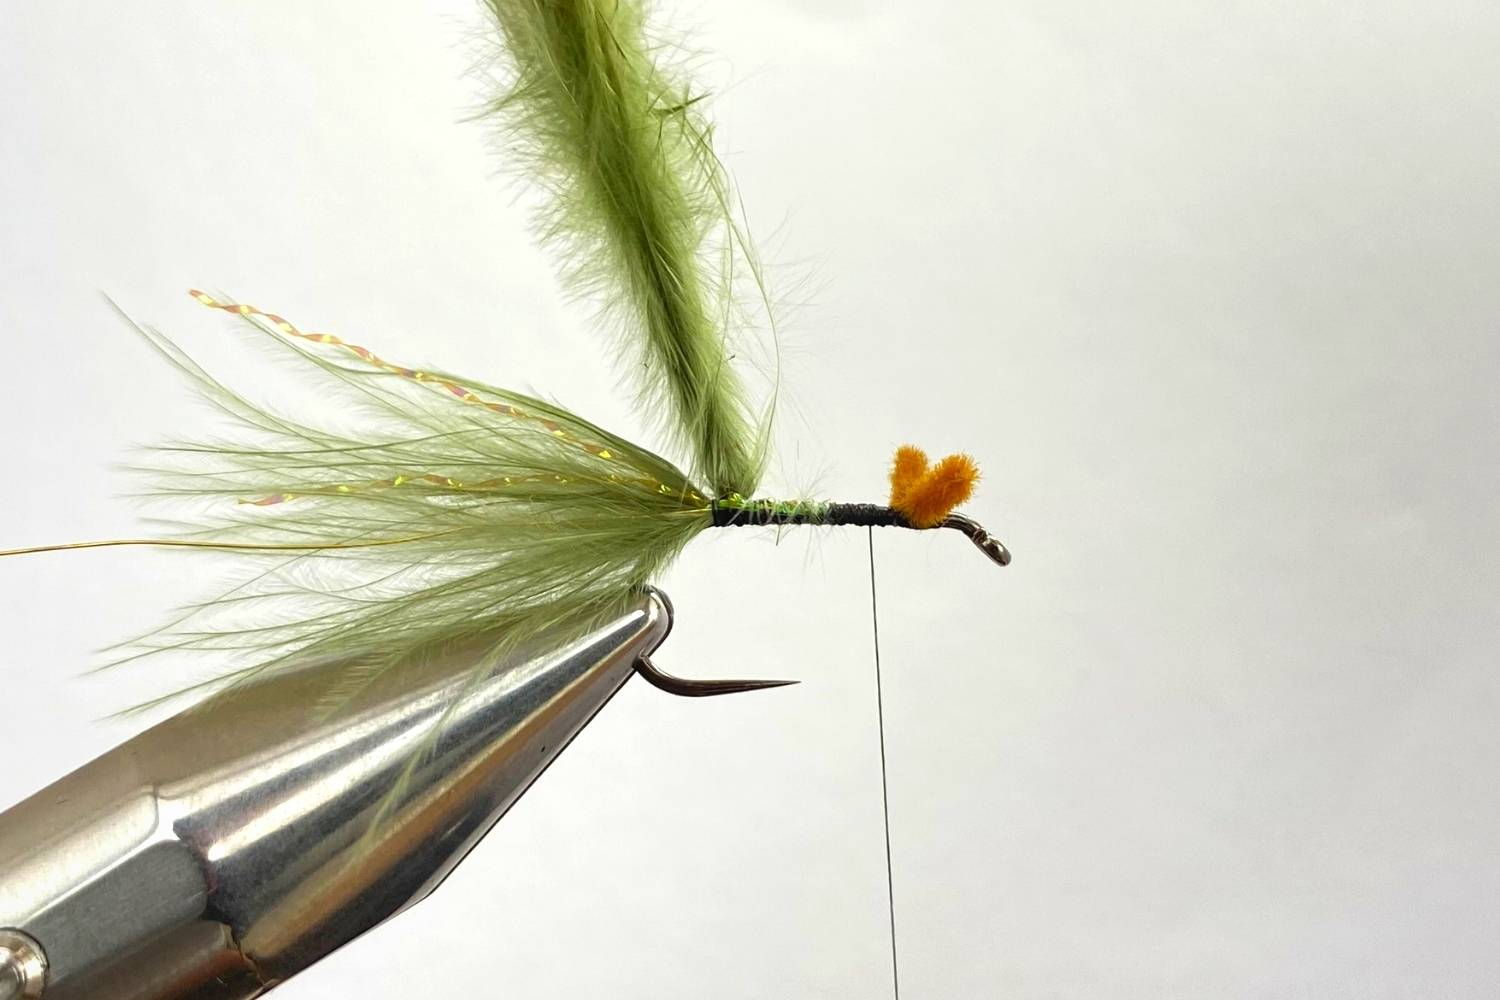 How to tie a Damselfly Nymph fly step 5